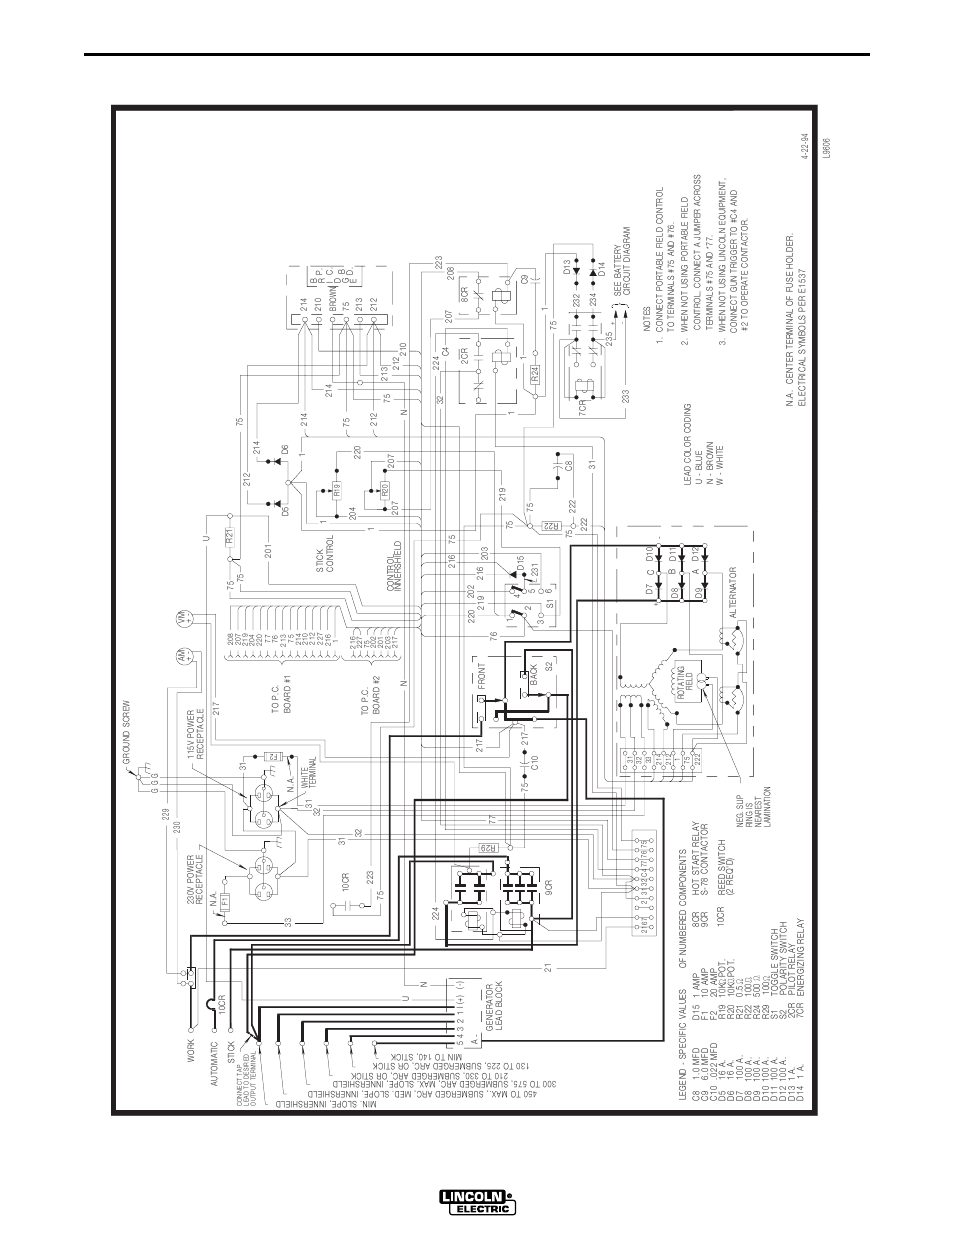 lincoln sam 400 wiring diagram free download wiring. Black Bedroom Furniture Sets. Home Design Ideas